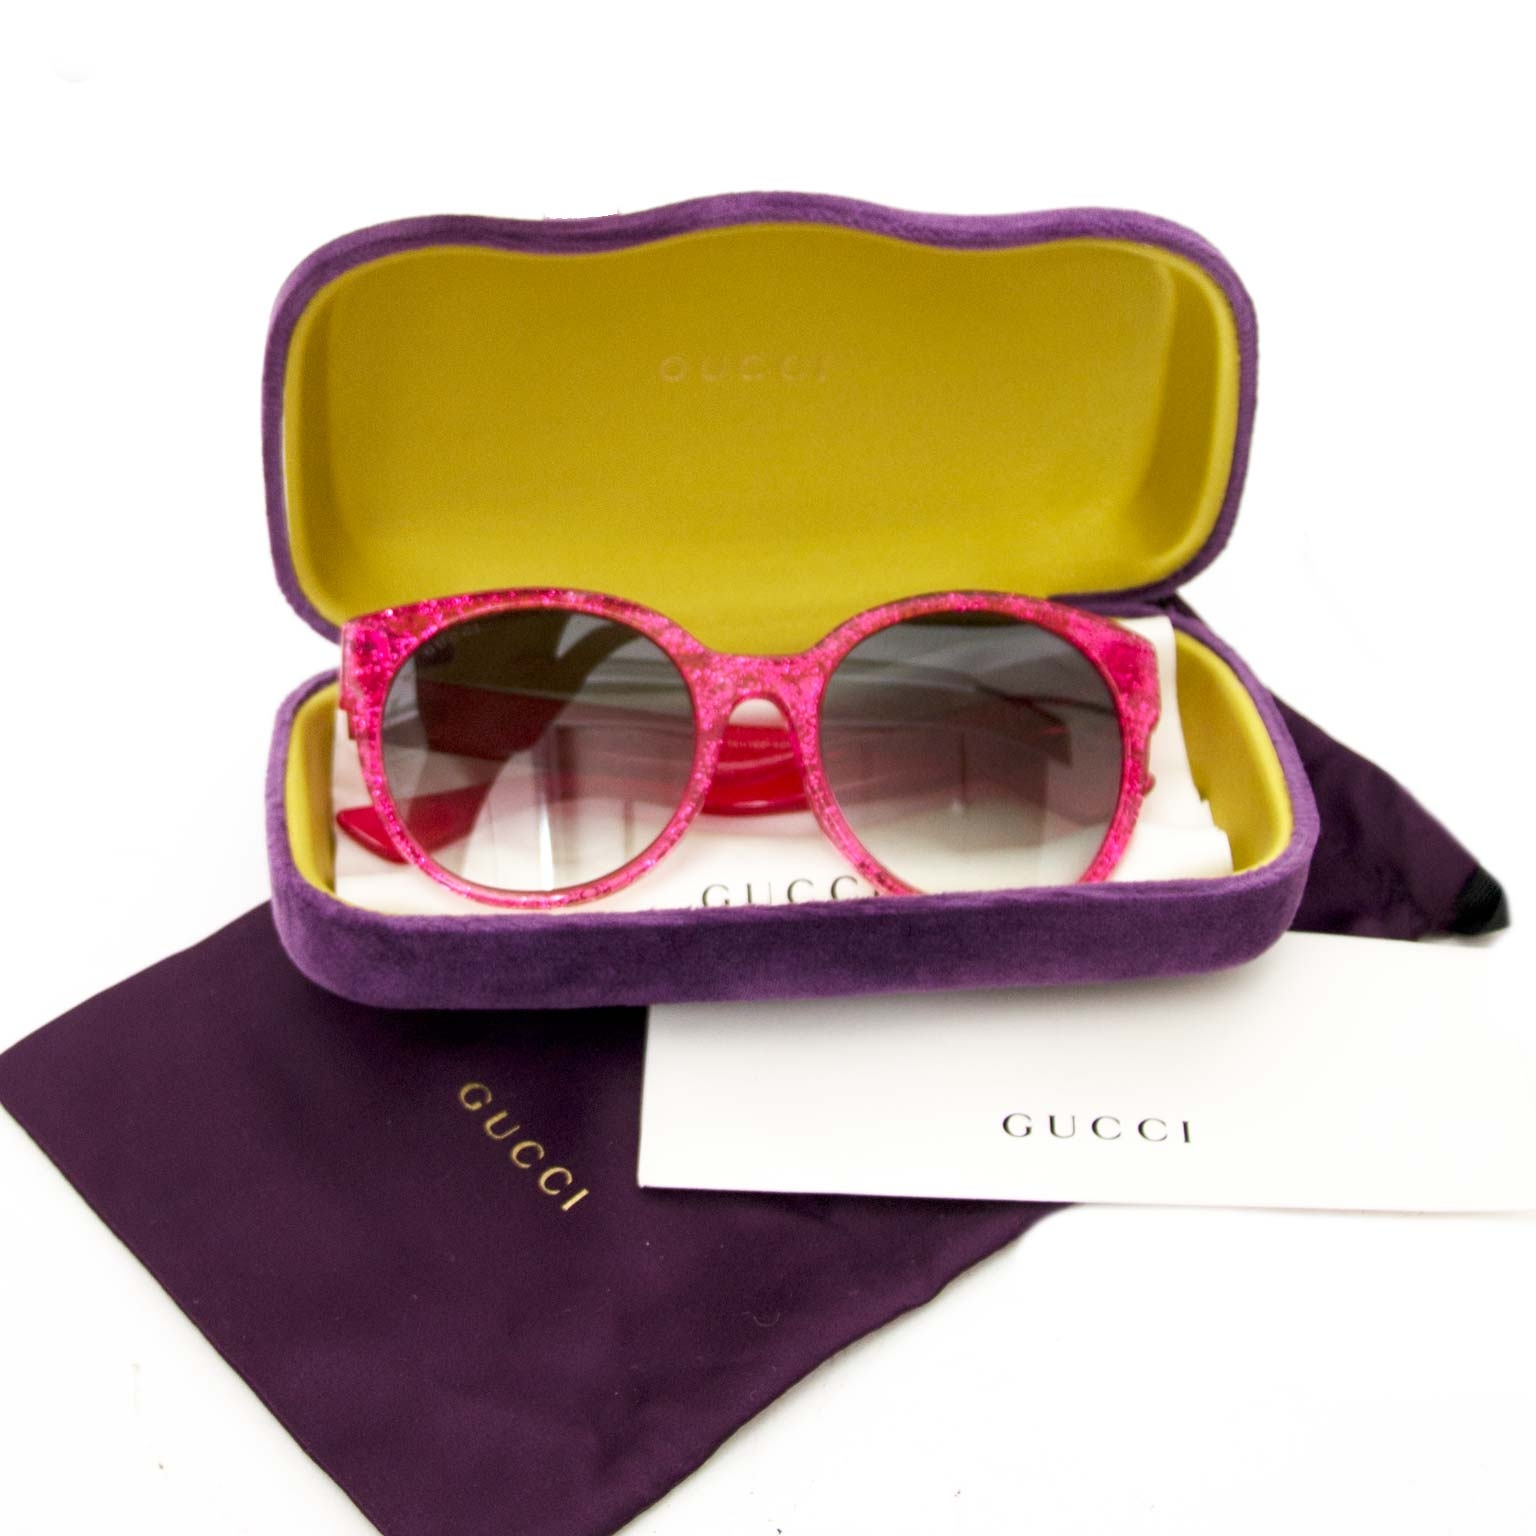 Gucci Pink Glitter Sunglasses for sale online at Labellov